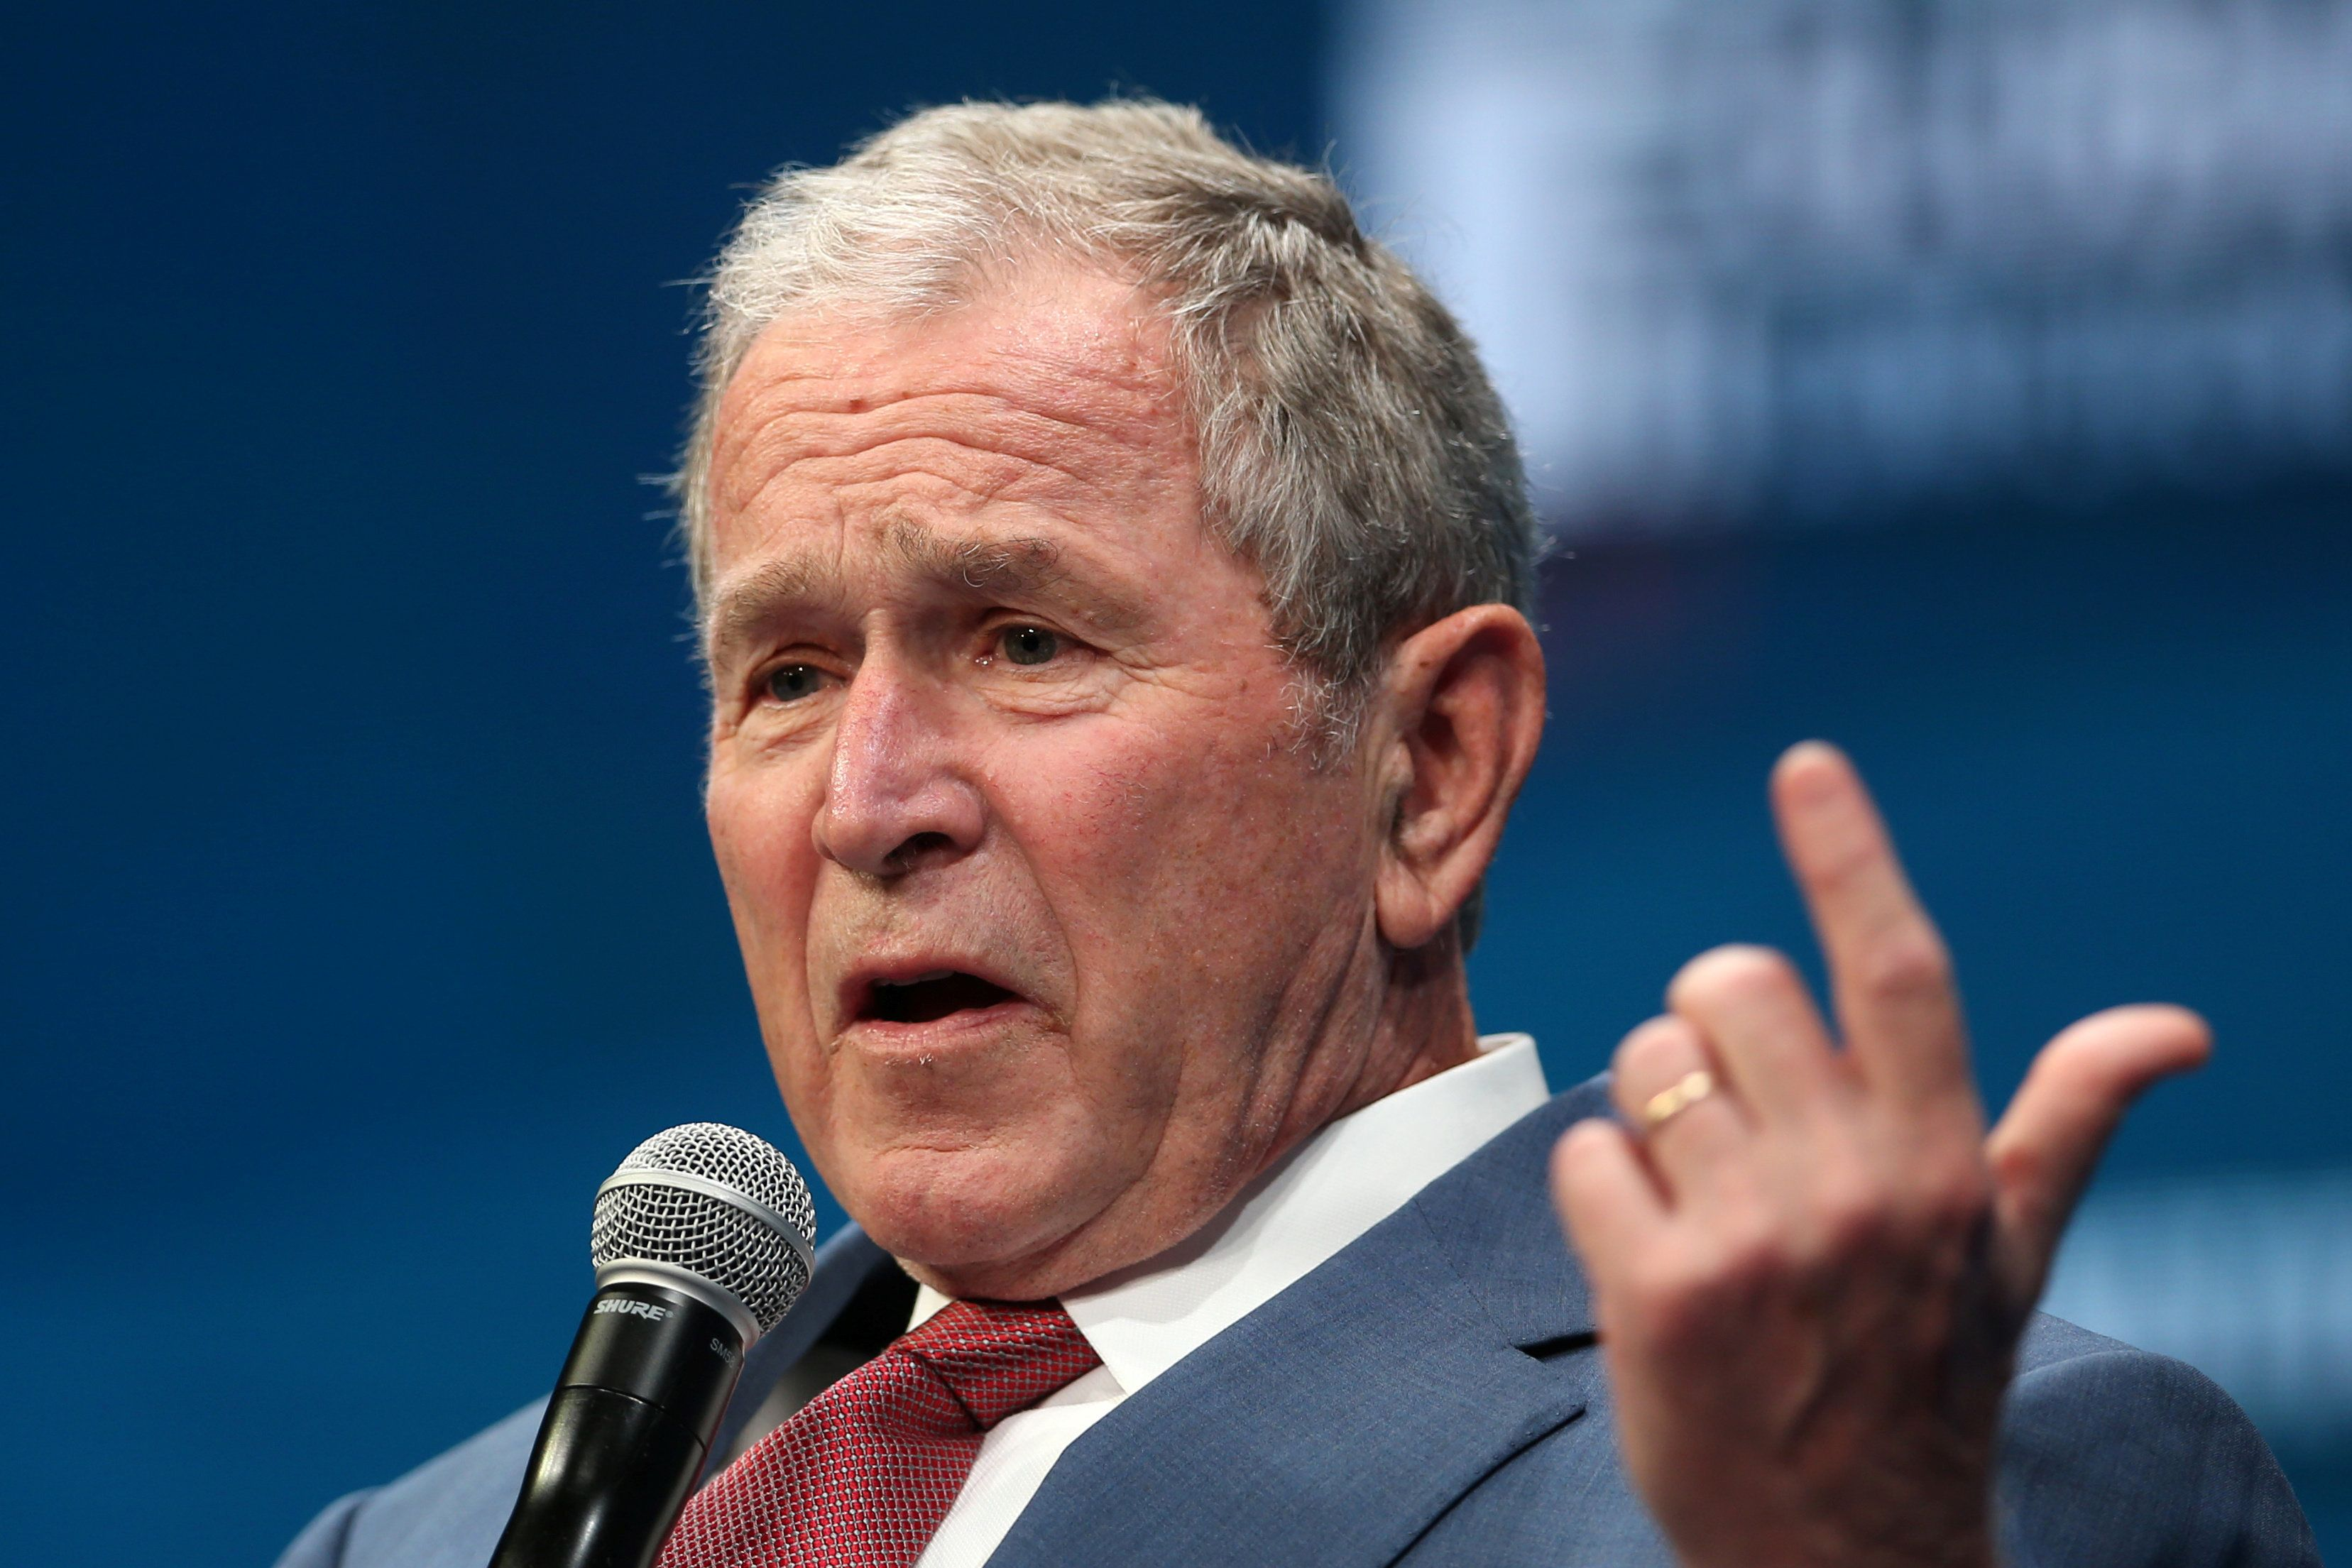 George W. Bush Condemns Trumpism, But Skips His Role In Its